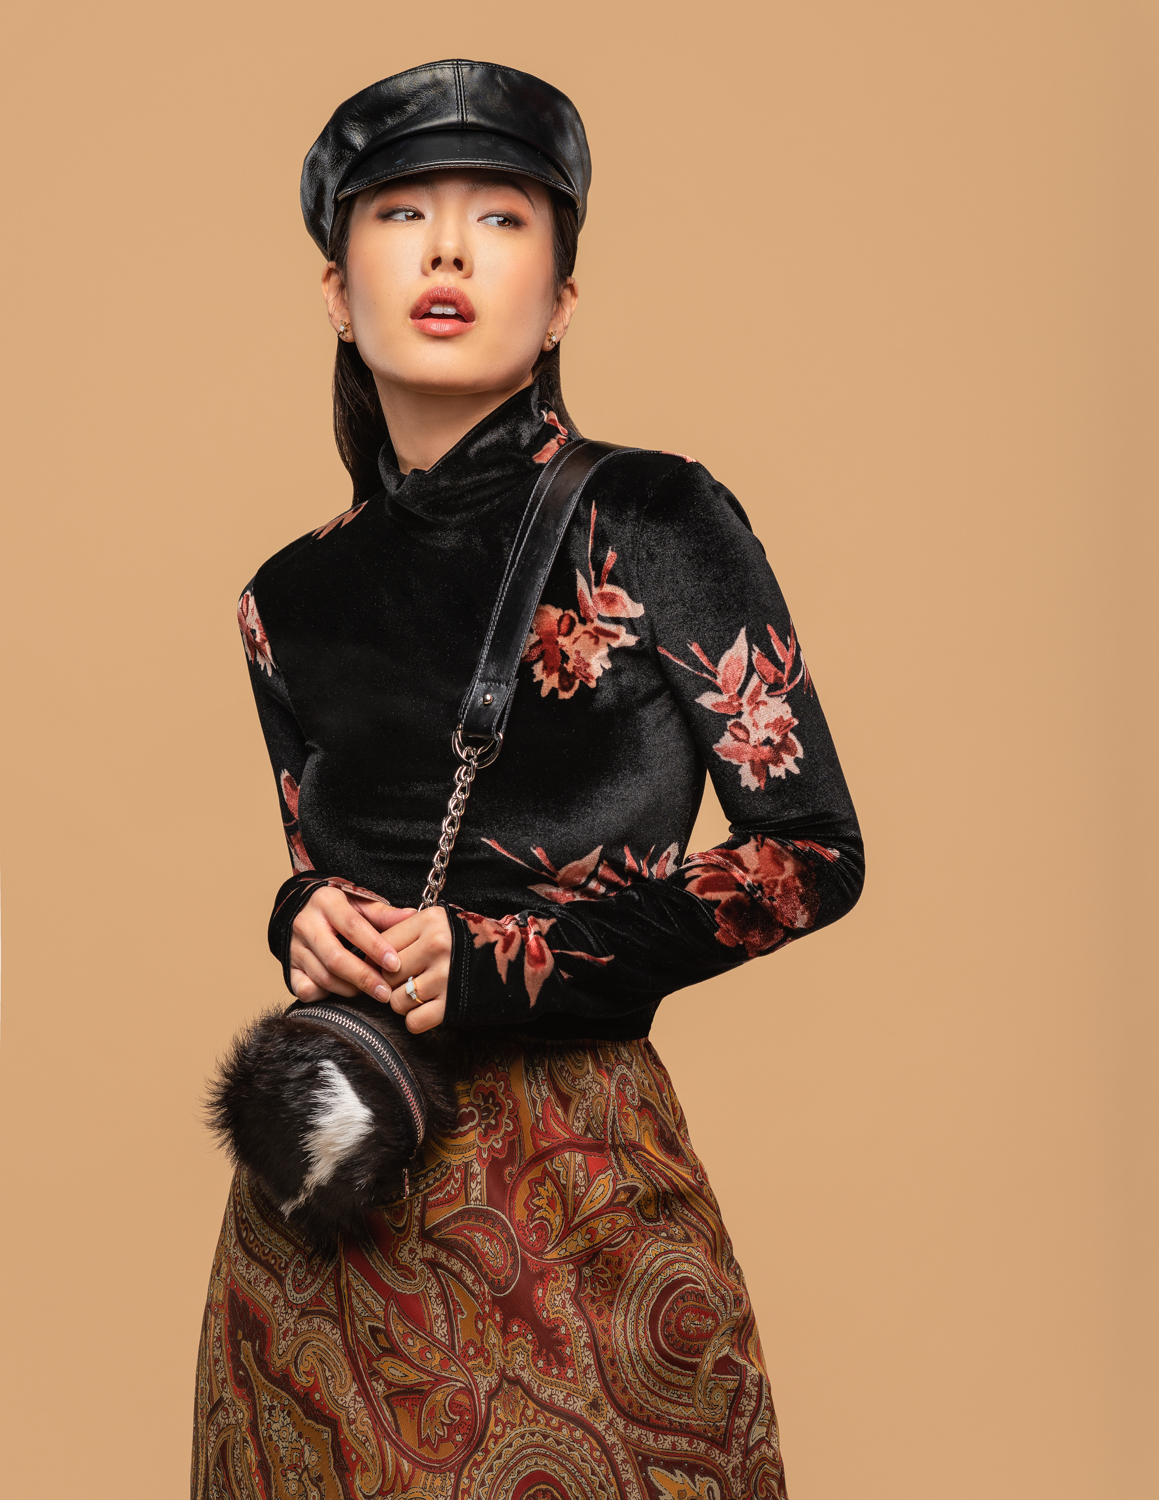 LEather cap and hide backpack by aleksia pavlovic  styled with vintage velvet top and reworked paisley skirt